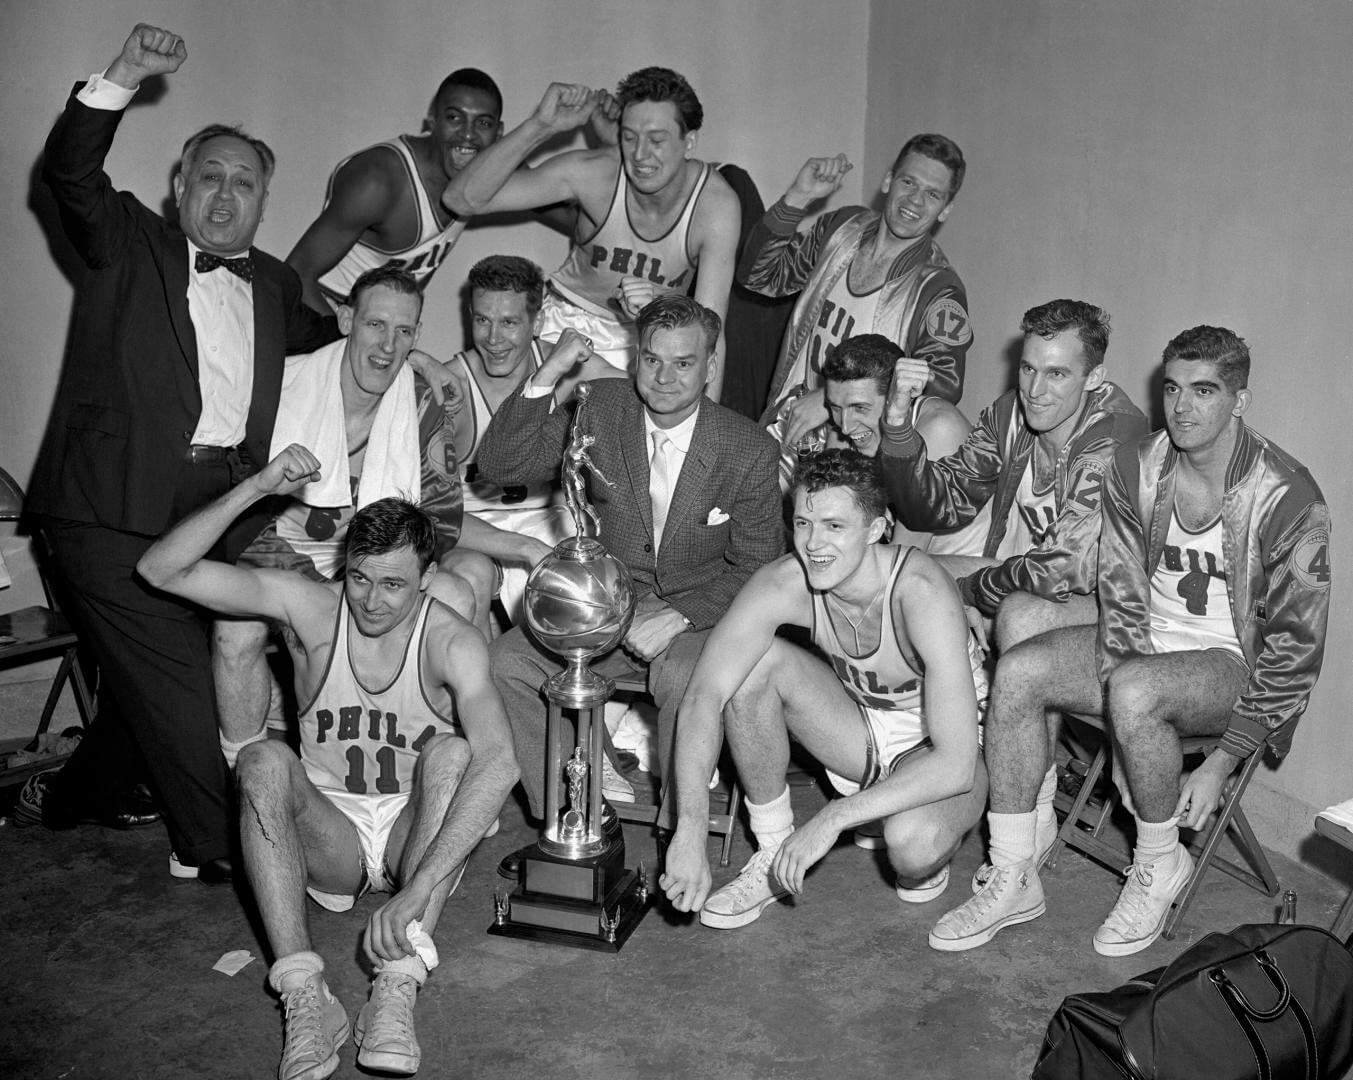 PHILADELPHIA, PA - APRIL 7: of the Philadelphia Warriors against the Fort Wayne Pistons during Game Five of the NBA Finals on April 7, 1956 at the Philadelphia Civic Center in Philadelphia, Pennsylvania. The Philadelphia Warriors defeated the Fort Wayne Pistons 99-88 and won the series 4-1. NOTE TO USER: User expressly acknowledges and agrees that, by downloading and or using this photograph, User is consenting to the terms and conditions of the Getty Images License Agreement. Mandatory Copyright Notice: Copyright 1956 NBAE (Photo by Charles T. Higgins/NBAE via Getty Images)